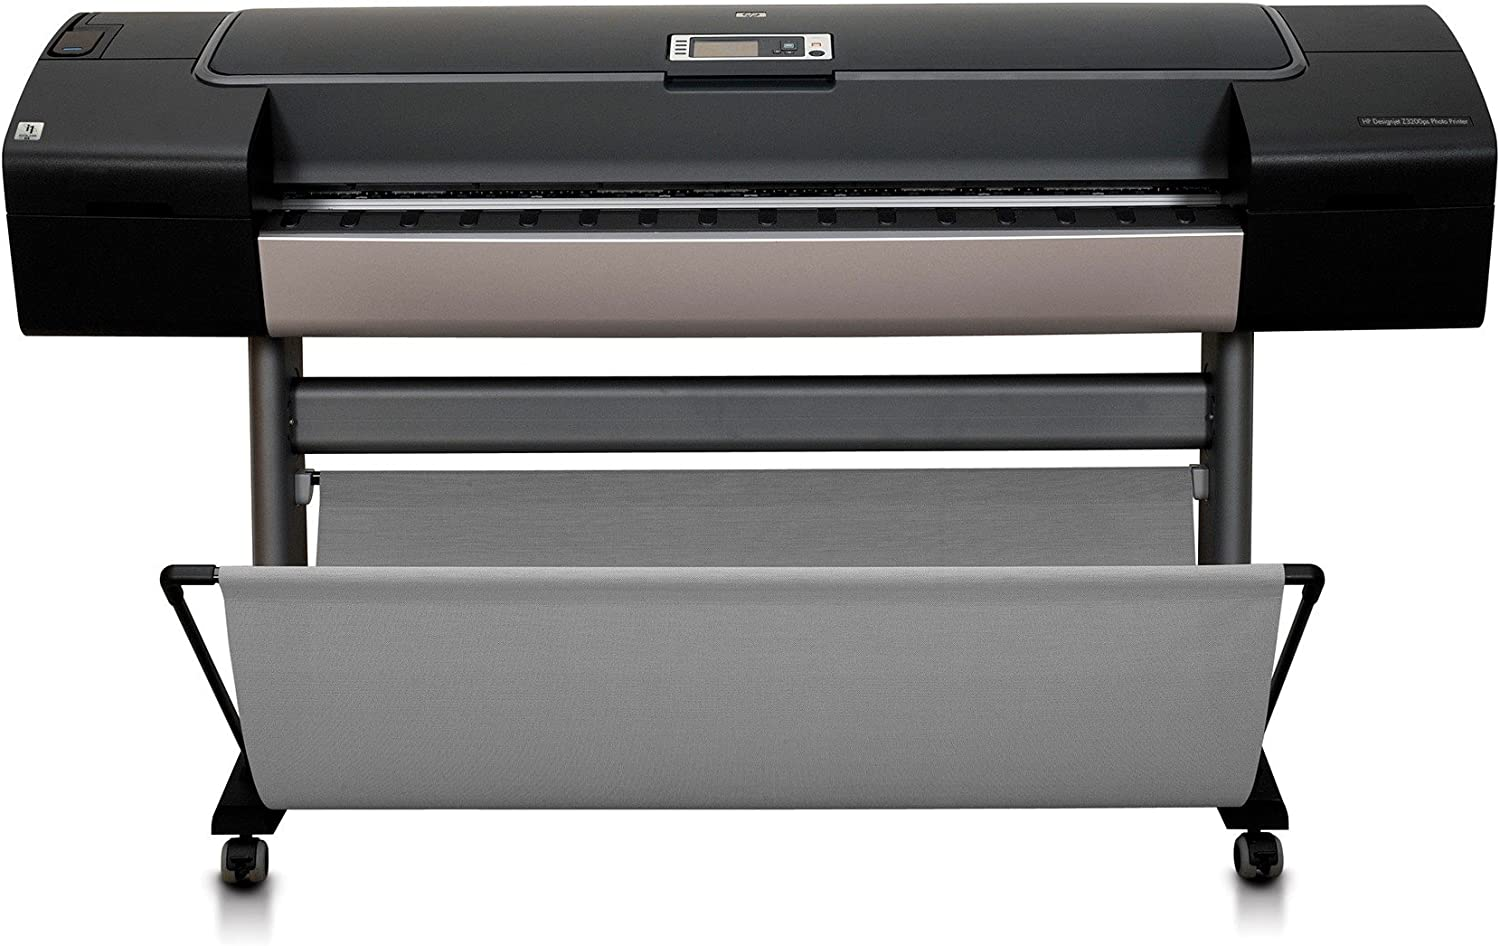 HP Designjet Z3200ps Photo Printer, 44